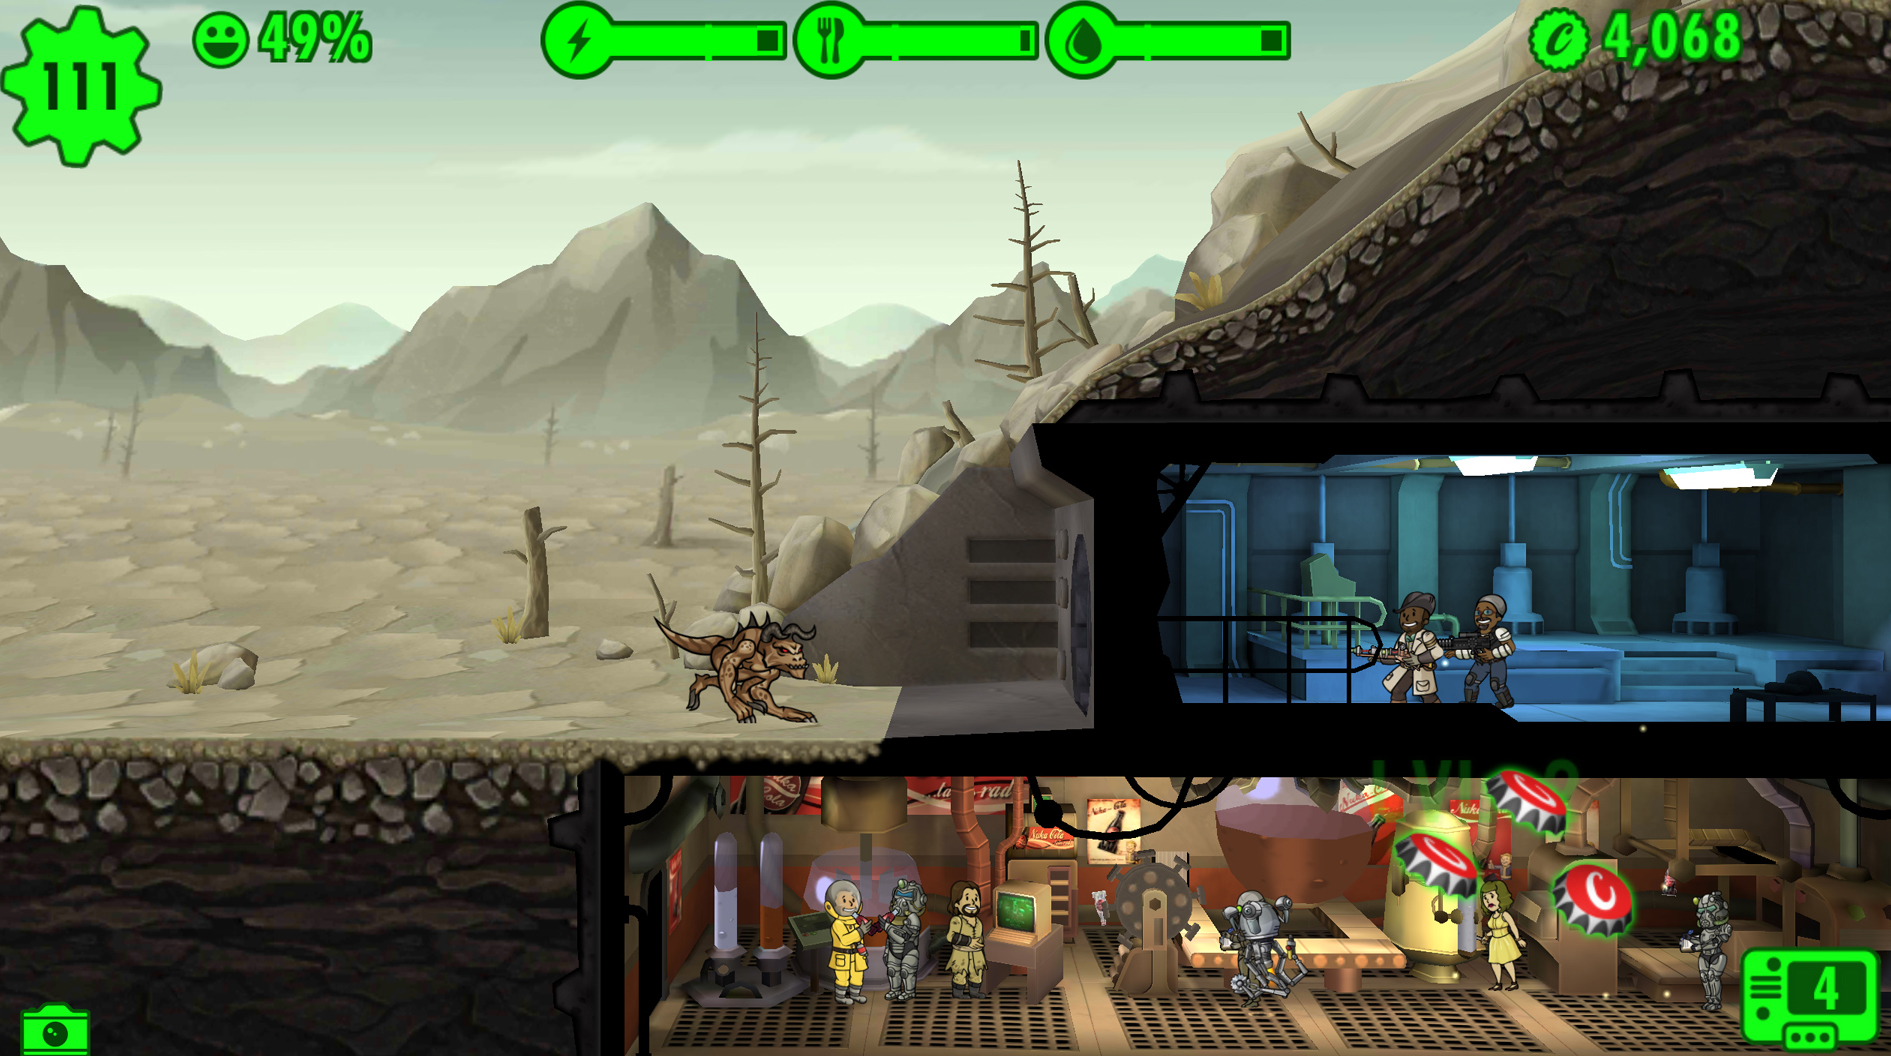 Play Fallout Shelter on SHIELD Tablet K1, get exclusive free in-game content